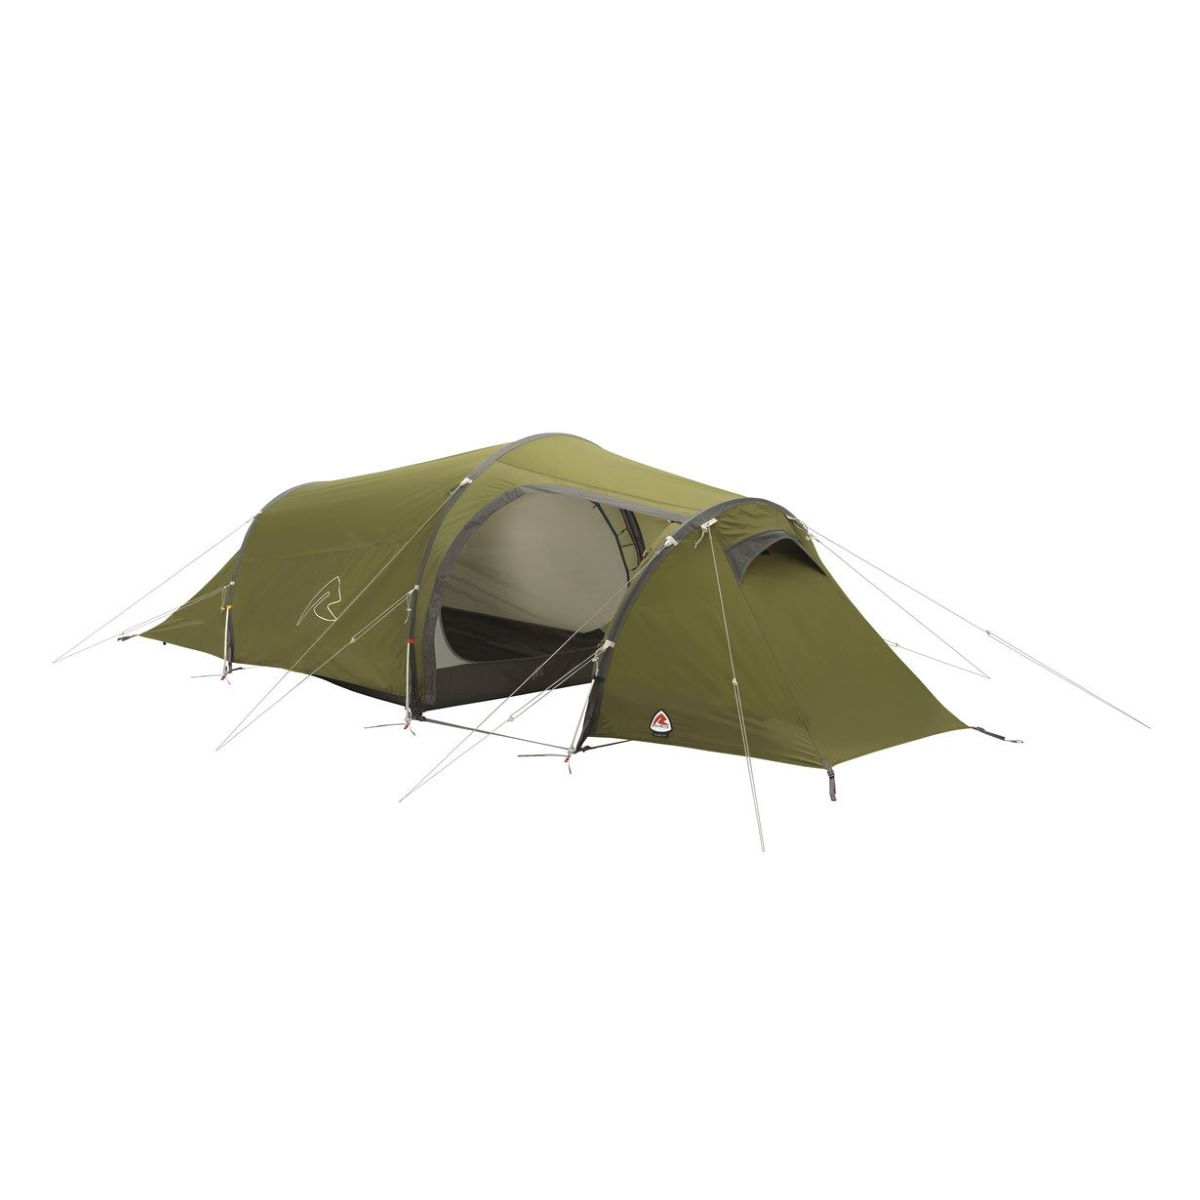 Robens Robens Voyager 2EX2 Person Tent   Tents